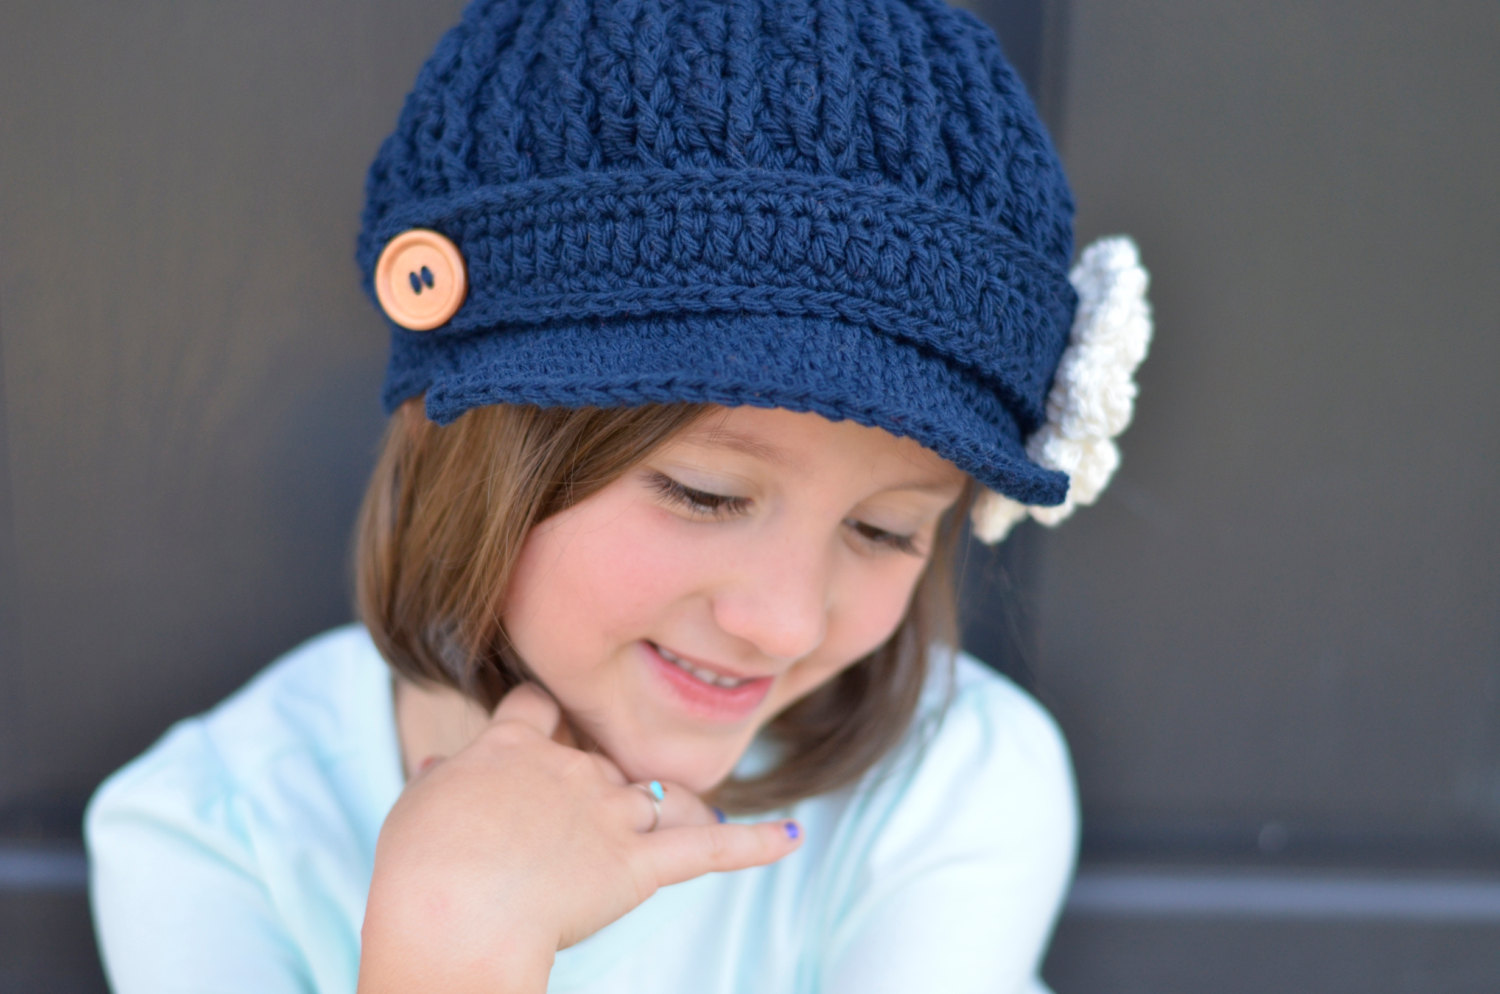 Crochet Hat Patterns - Happiness is Homemade